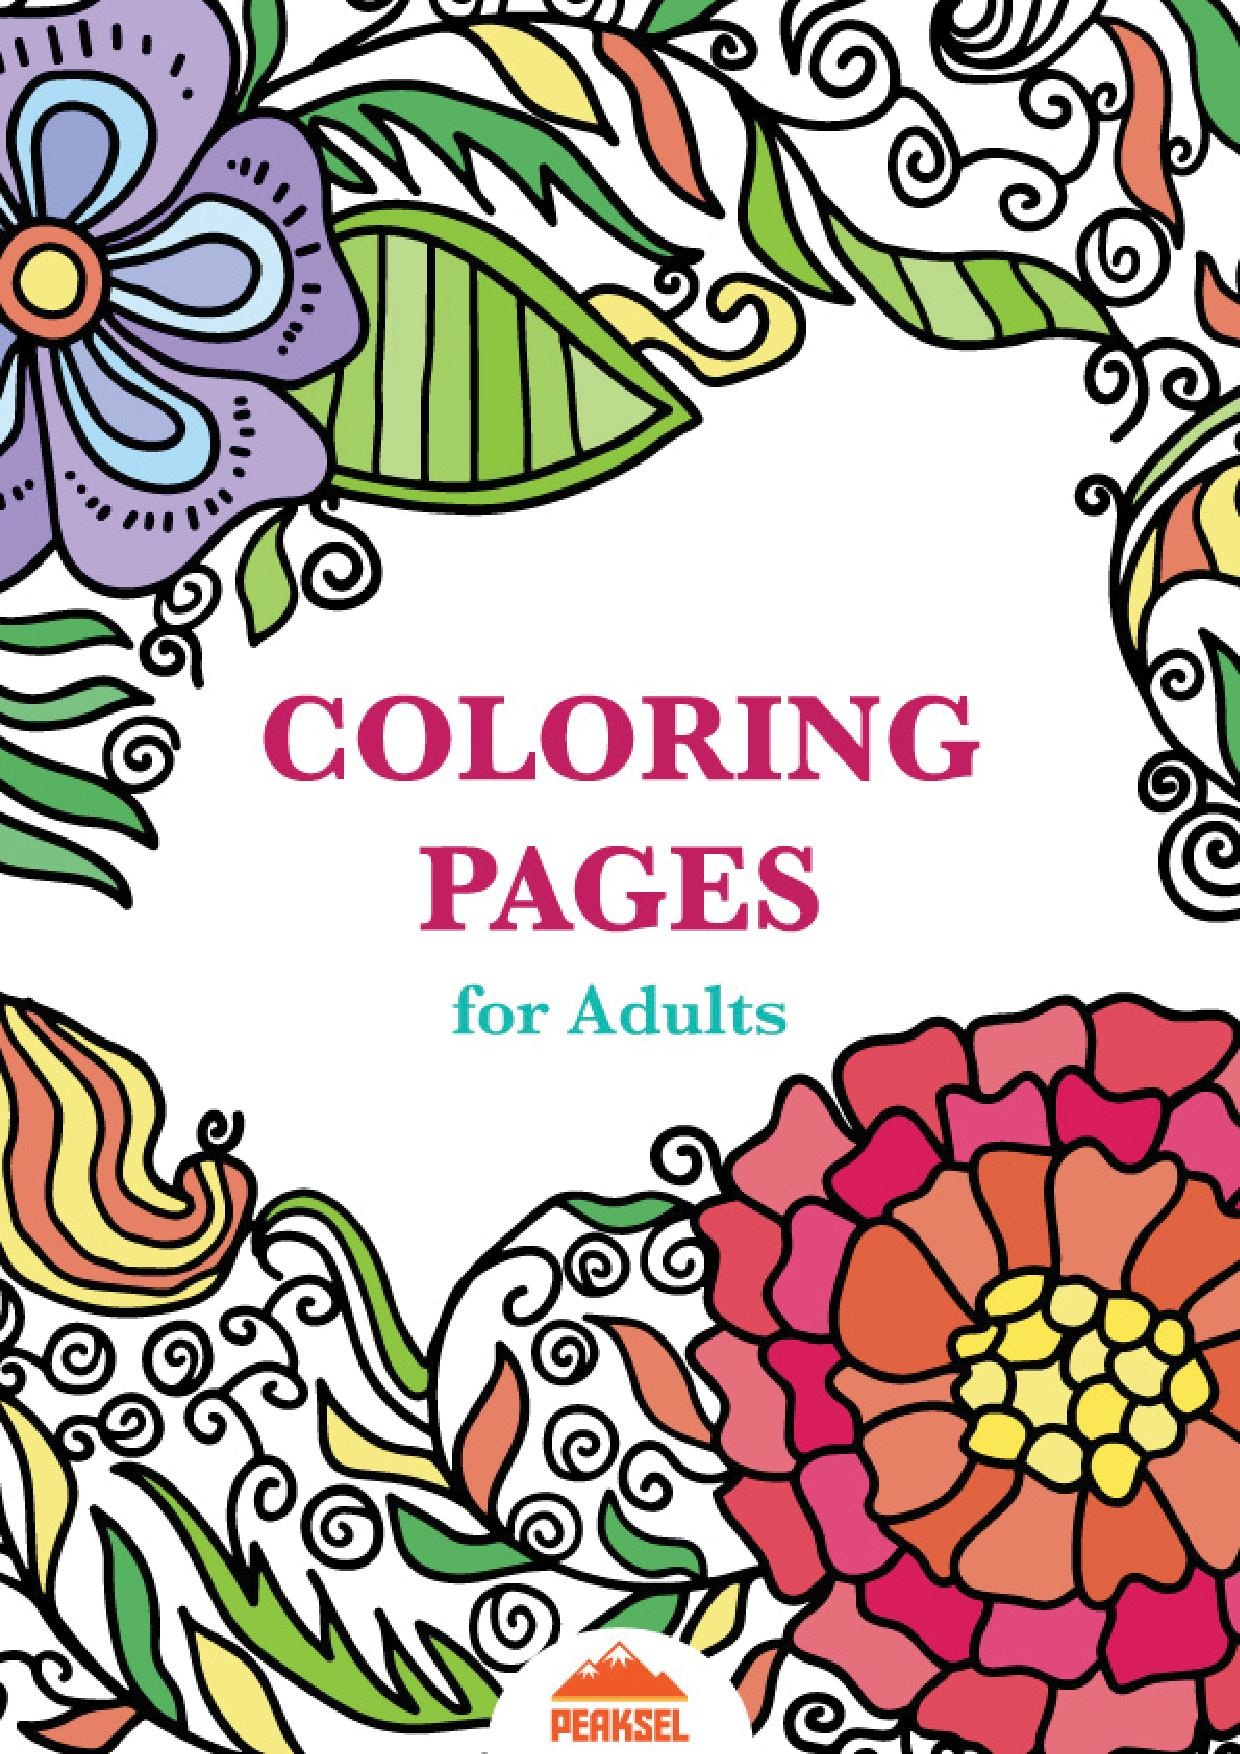 File Printable Coloring Pages For Adults Free Adult Book Rh Commons Wikimedia Org Apps Windows 10